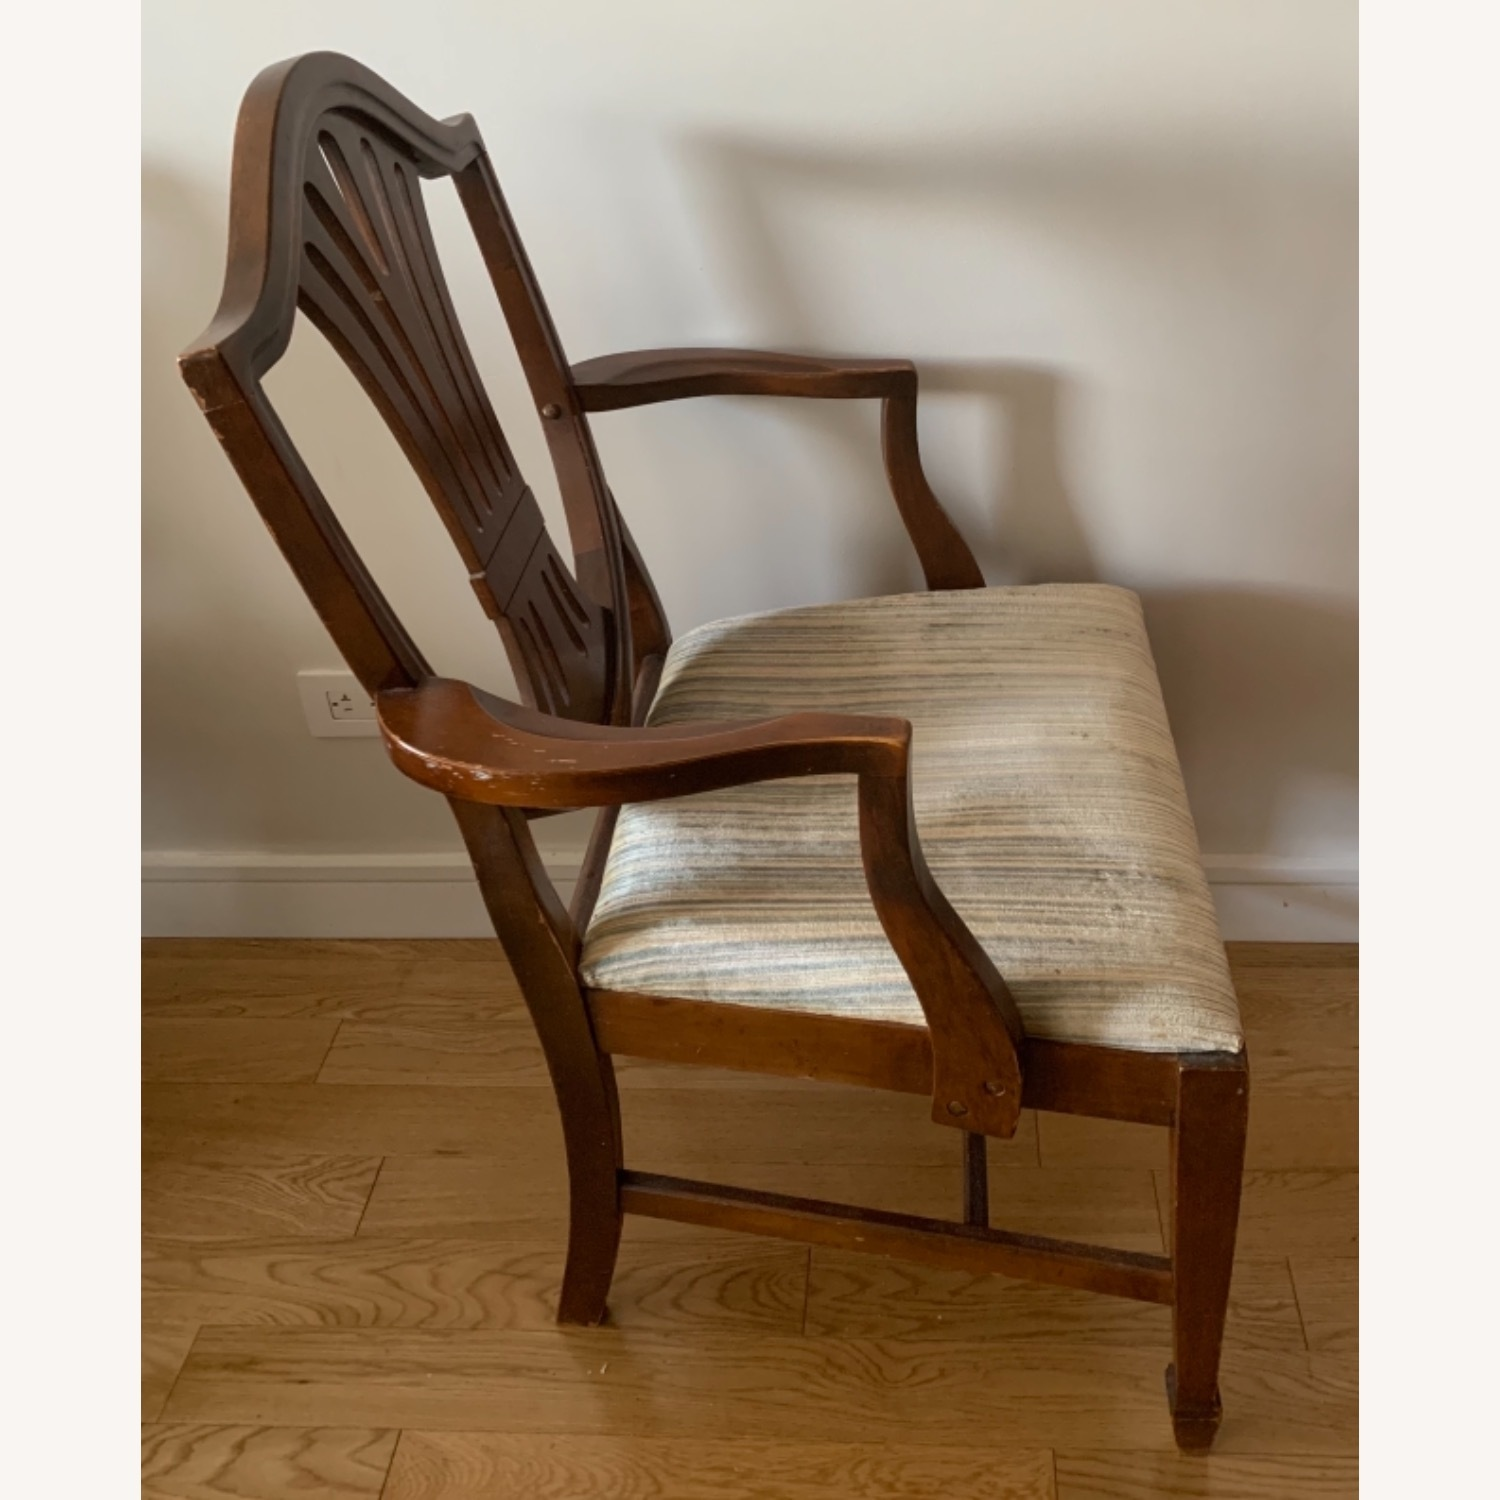 Antique Mahogany Dining Side Chairs - image-9